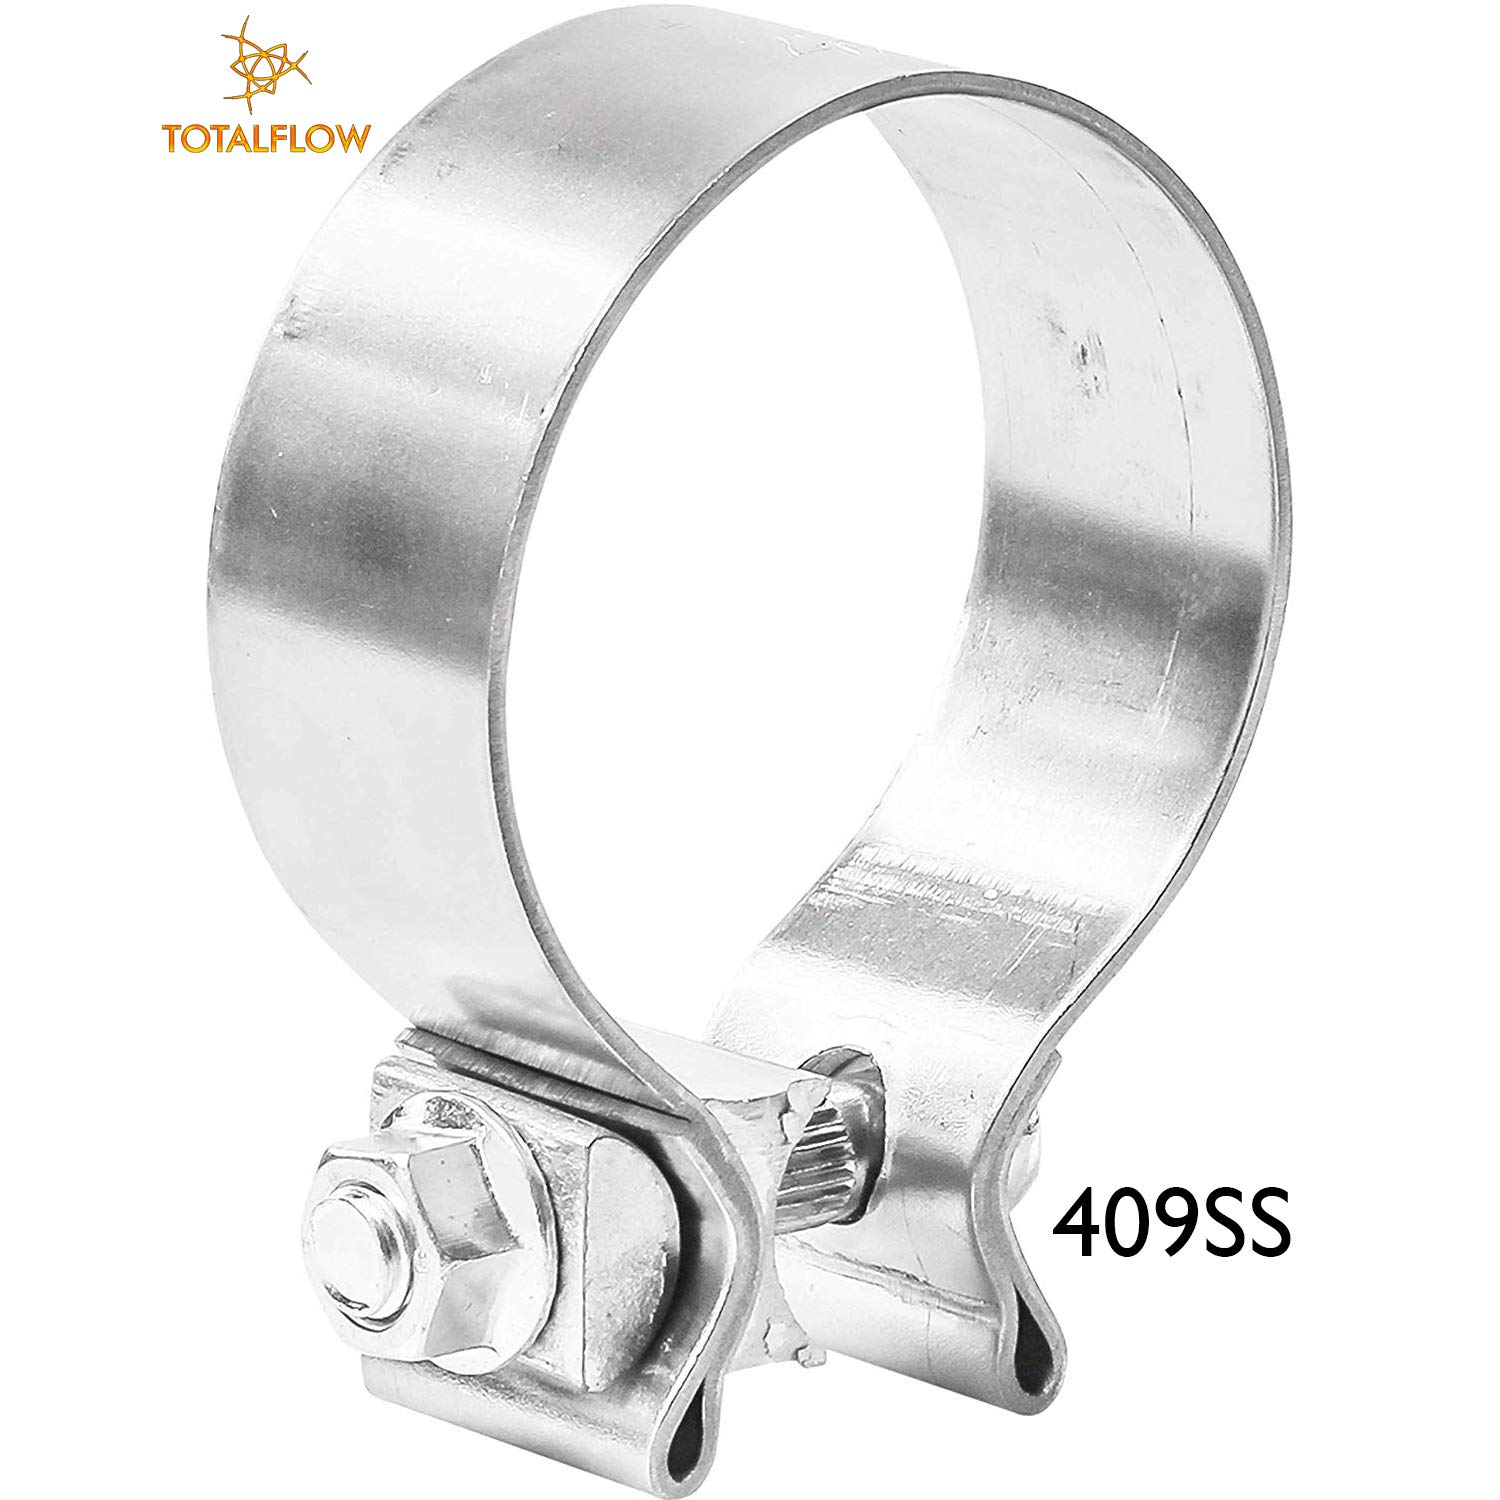 TOTALFLOW 3 TF-J60 304 Stainless Steel Lap Joint Exhaust Muffler Clamp Band-3 Inch